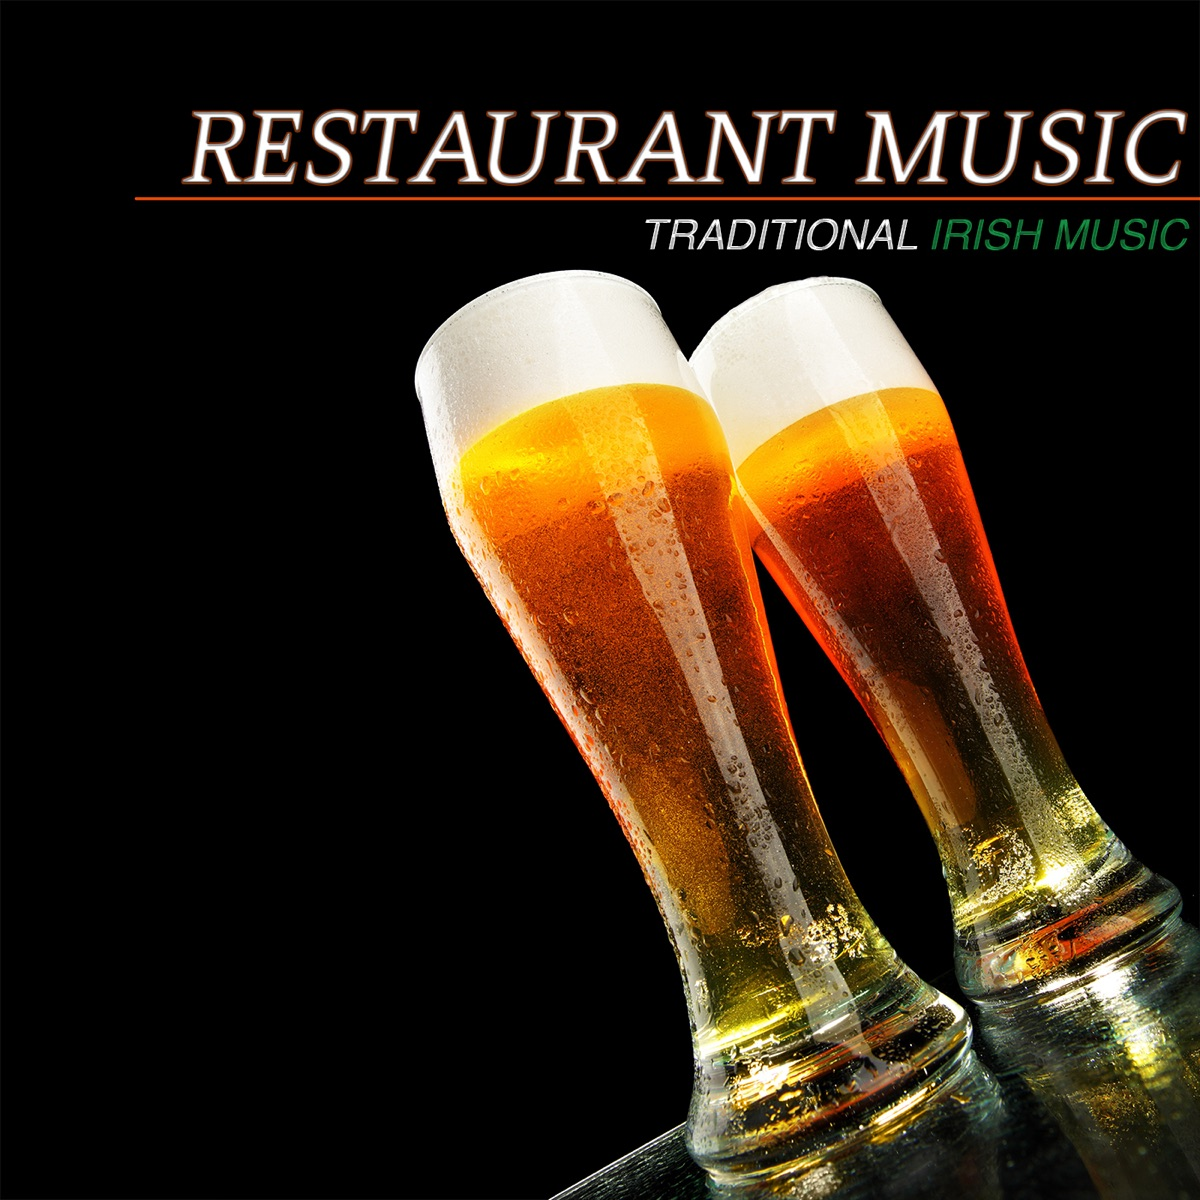 Restaurant Music: Traditional Irish Music & Irish Pub Songs Album